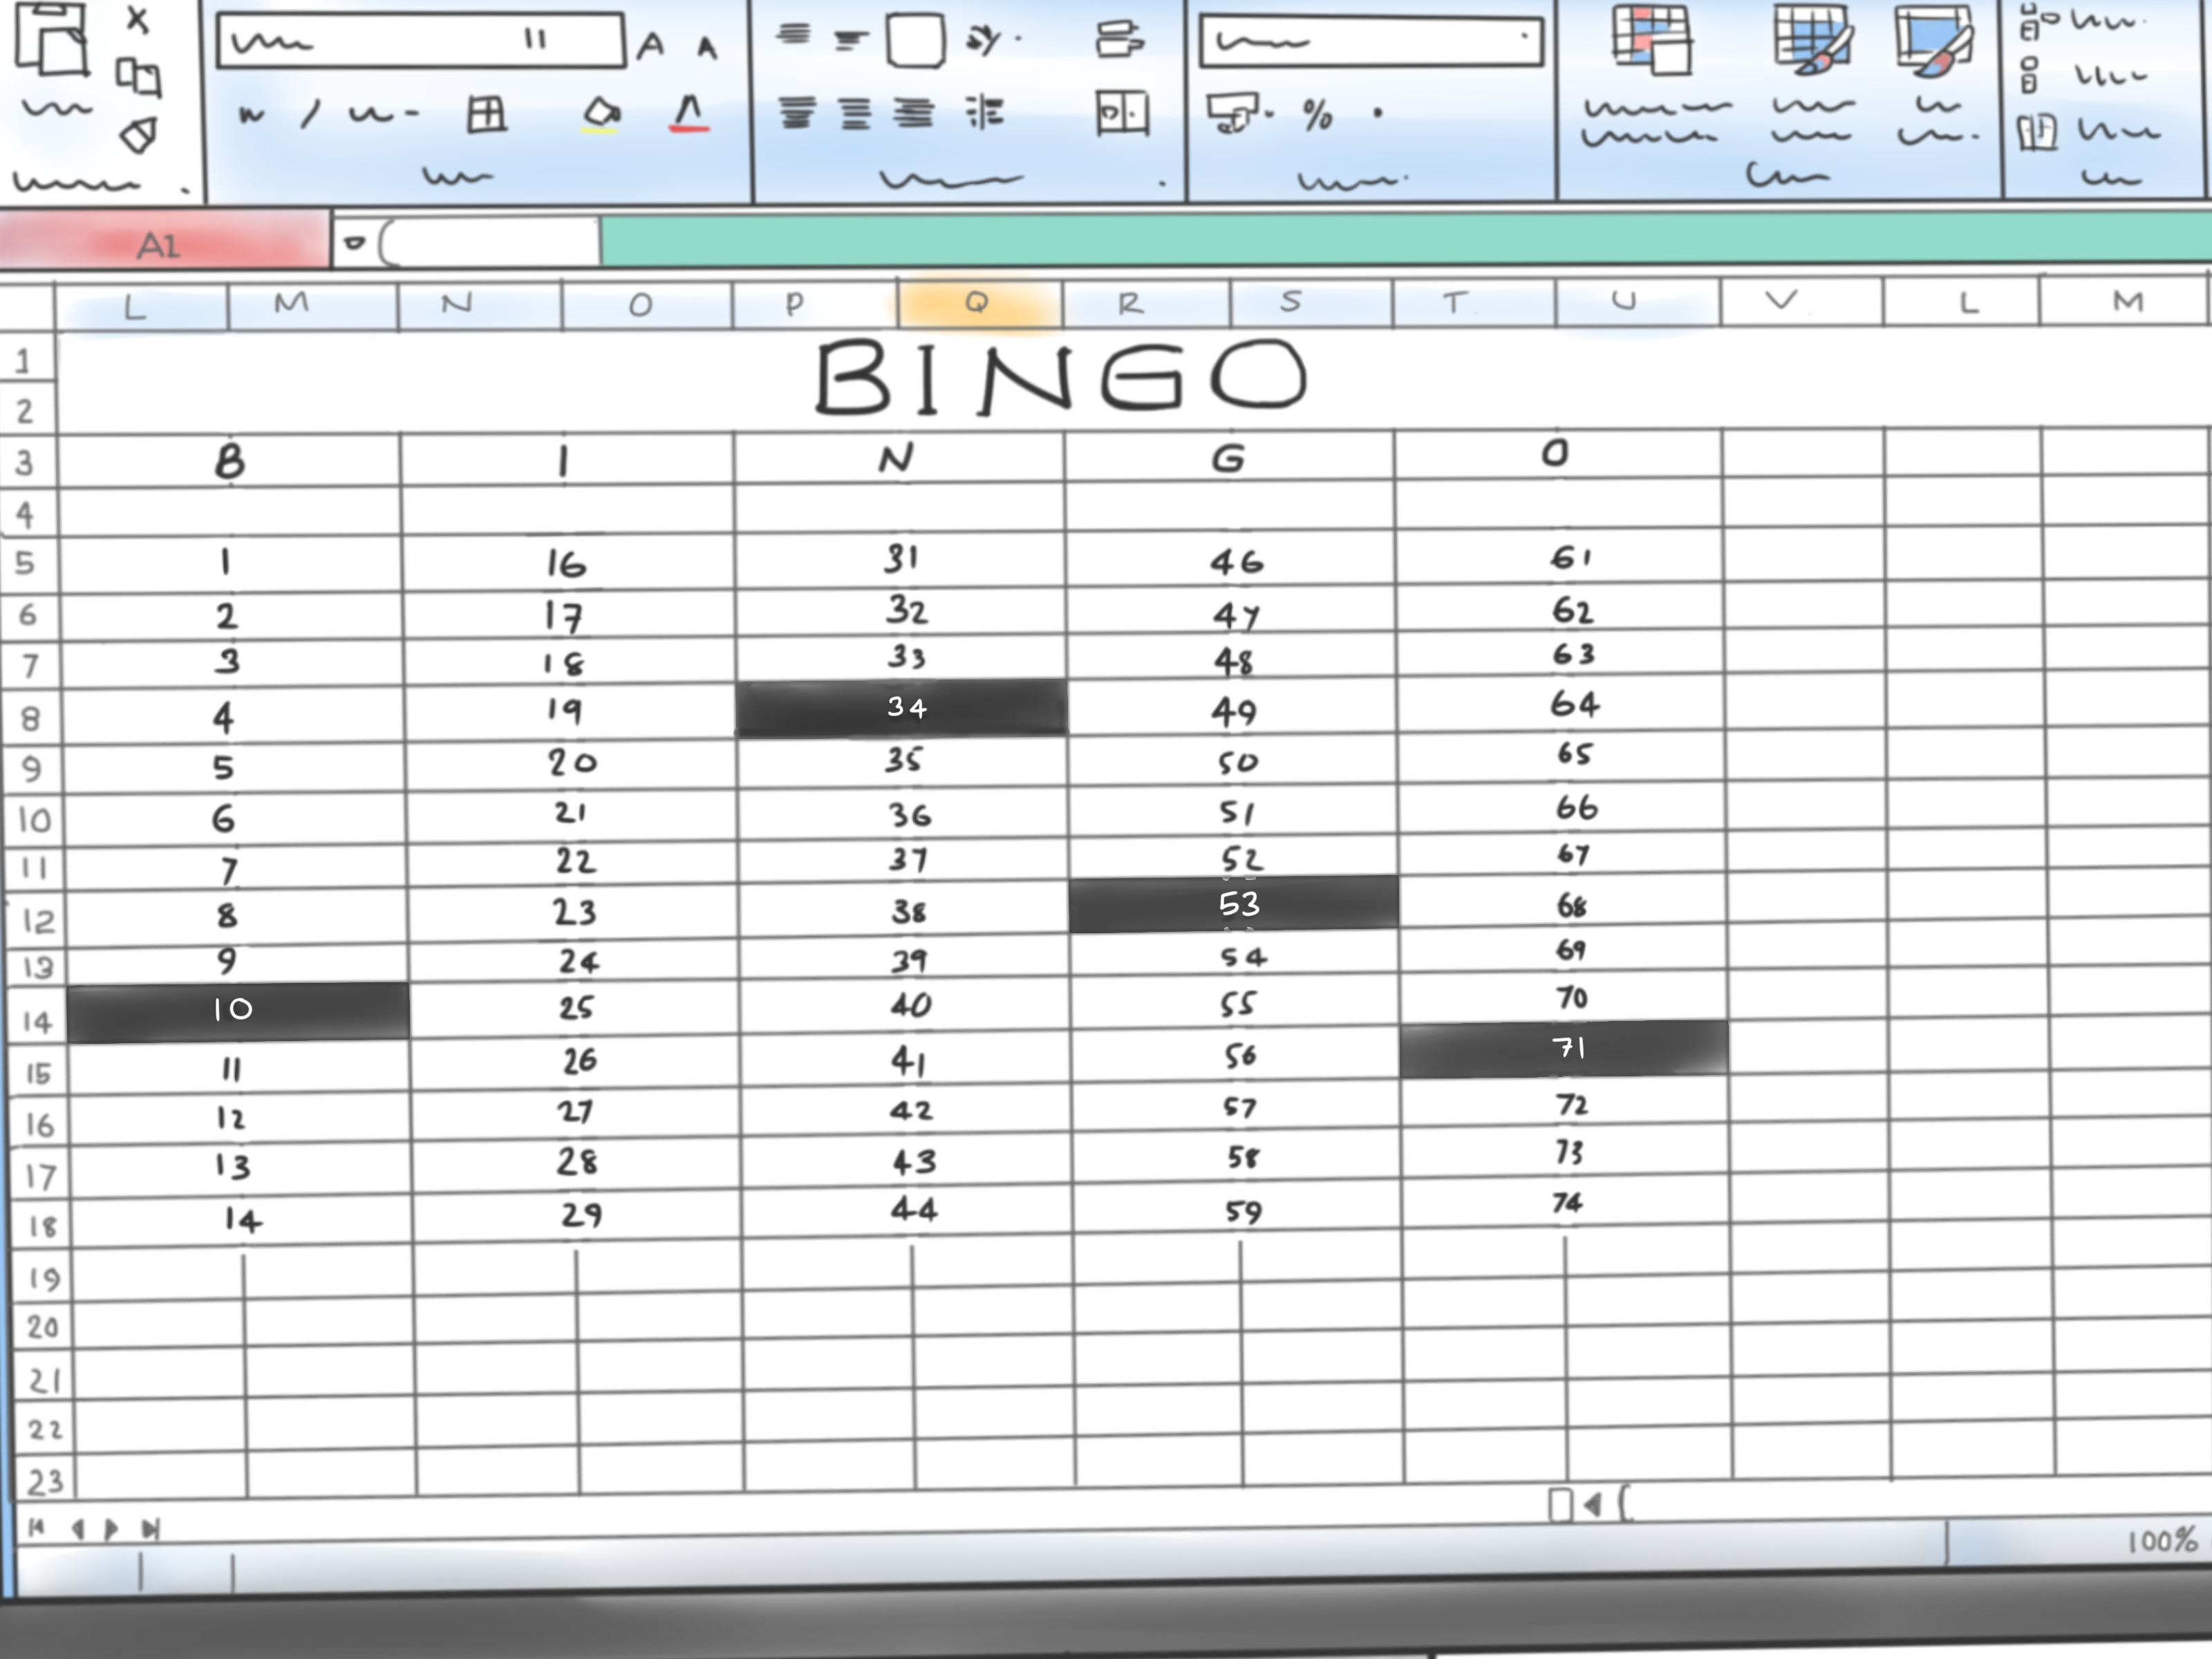 Excel Spreadsheet Games Intended For How To Make A Bingo Game In Microsoft Office Excel 2007: 9 Steps